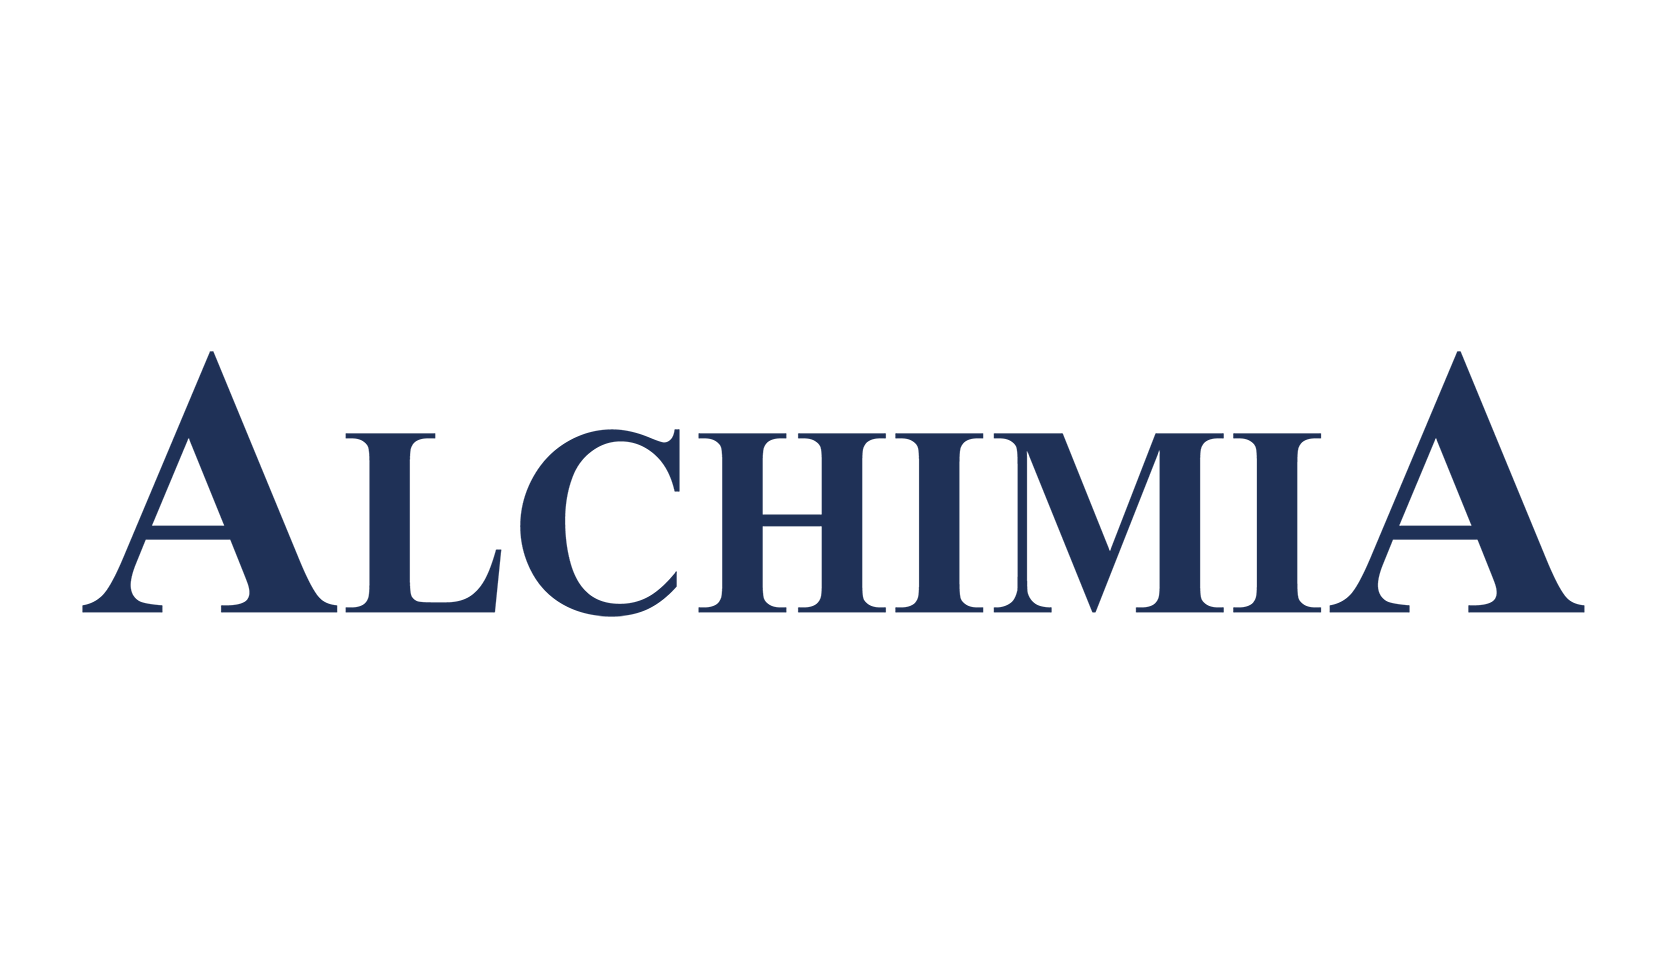 Alchimia srl | Ophthalmic Surgery and Human Tissue Processing